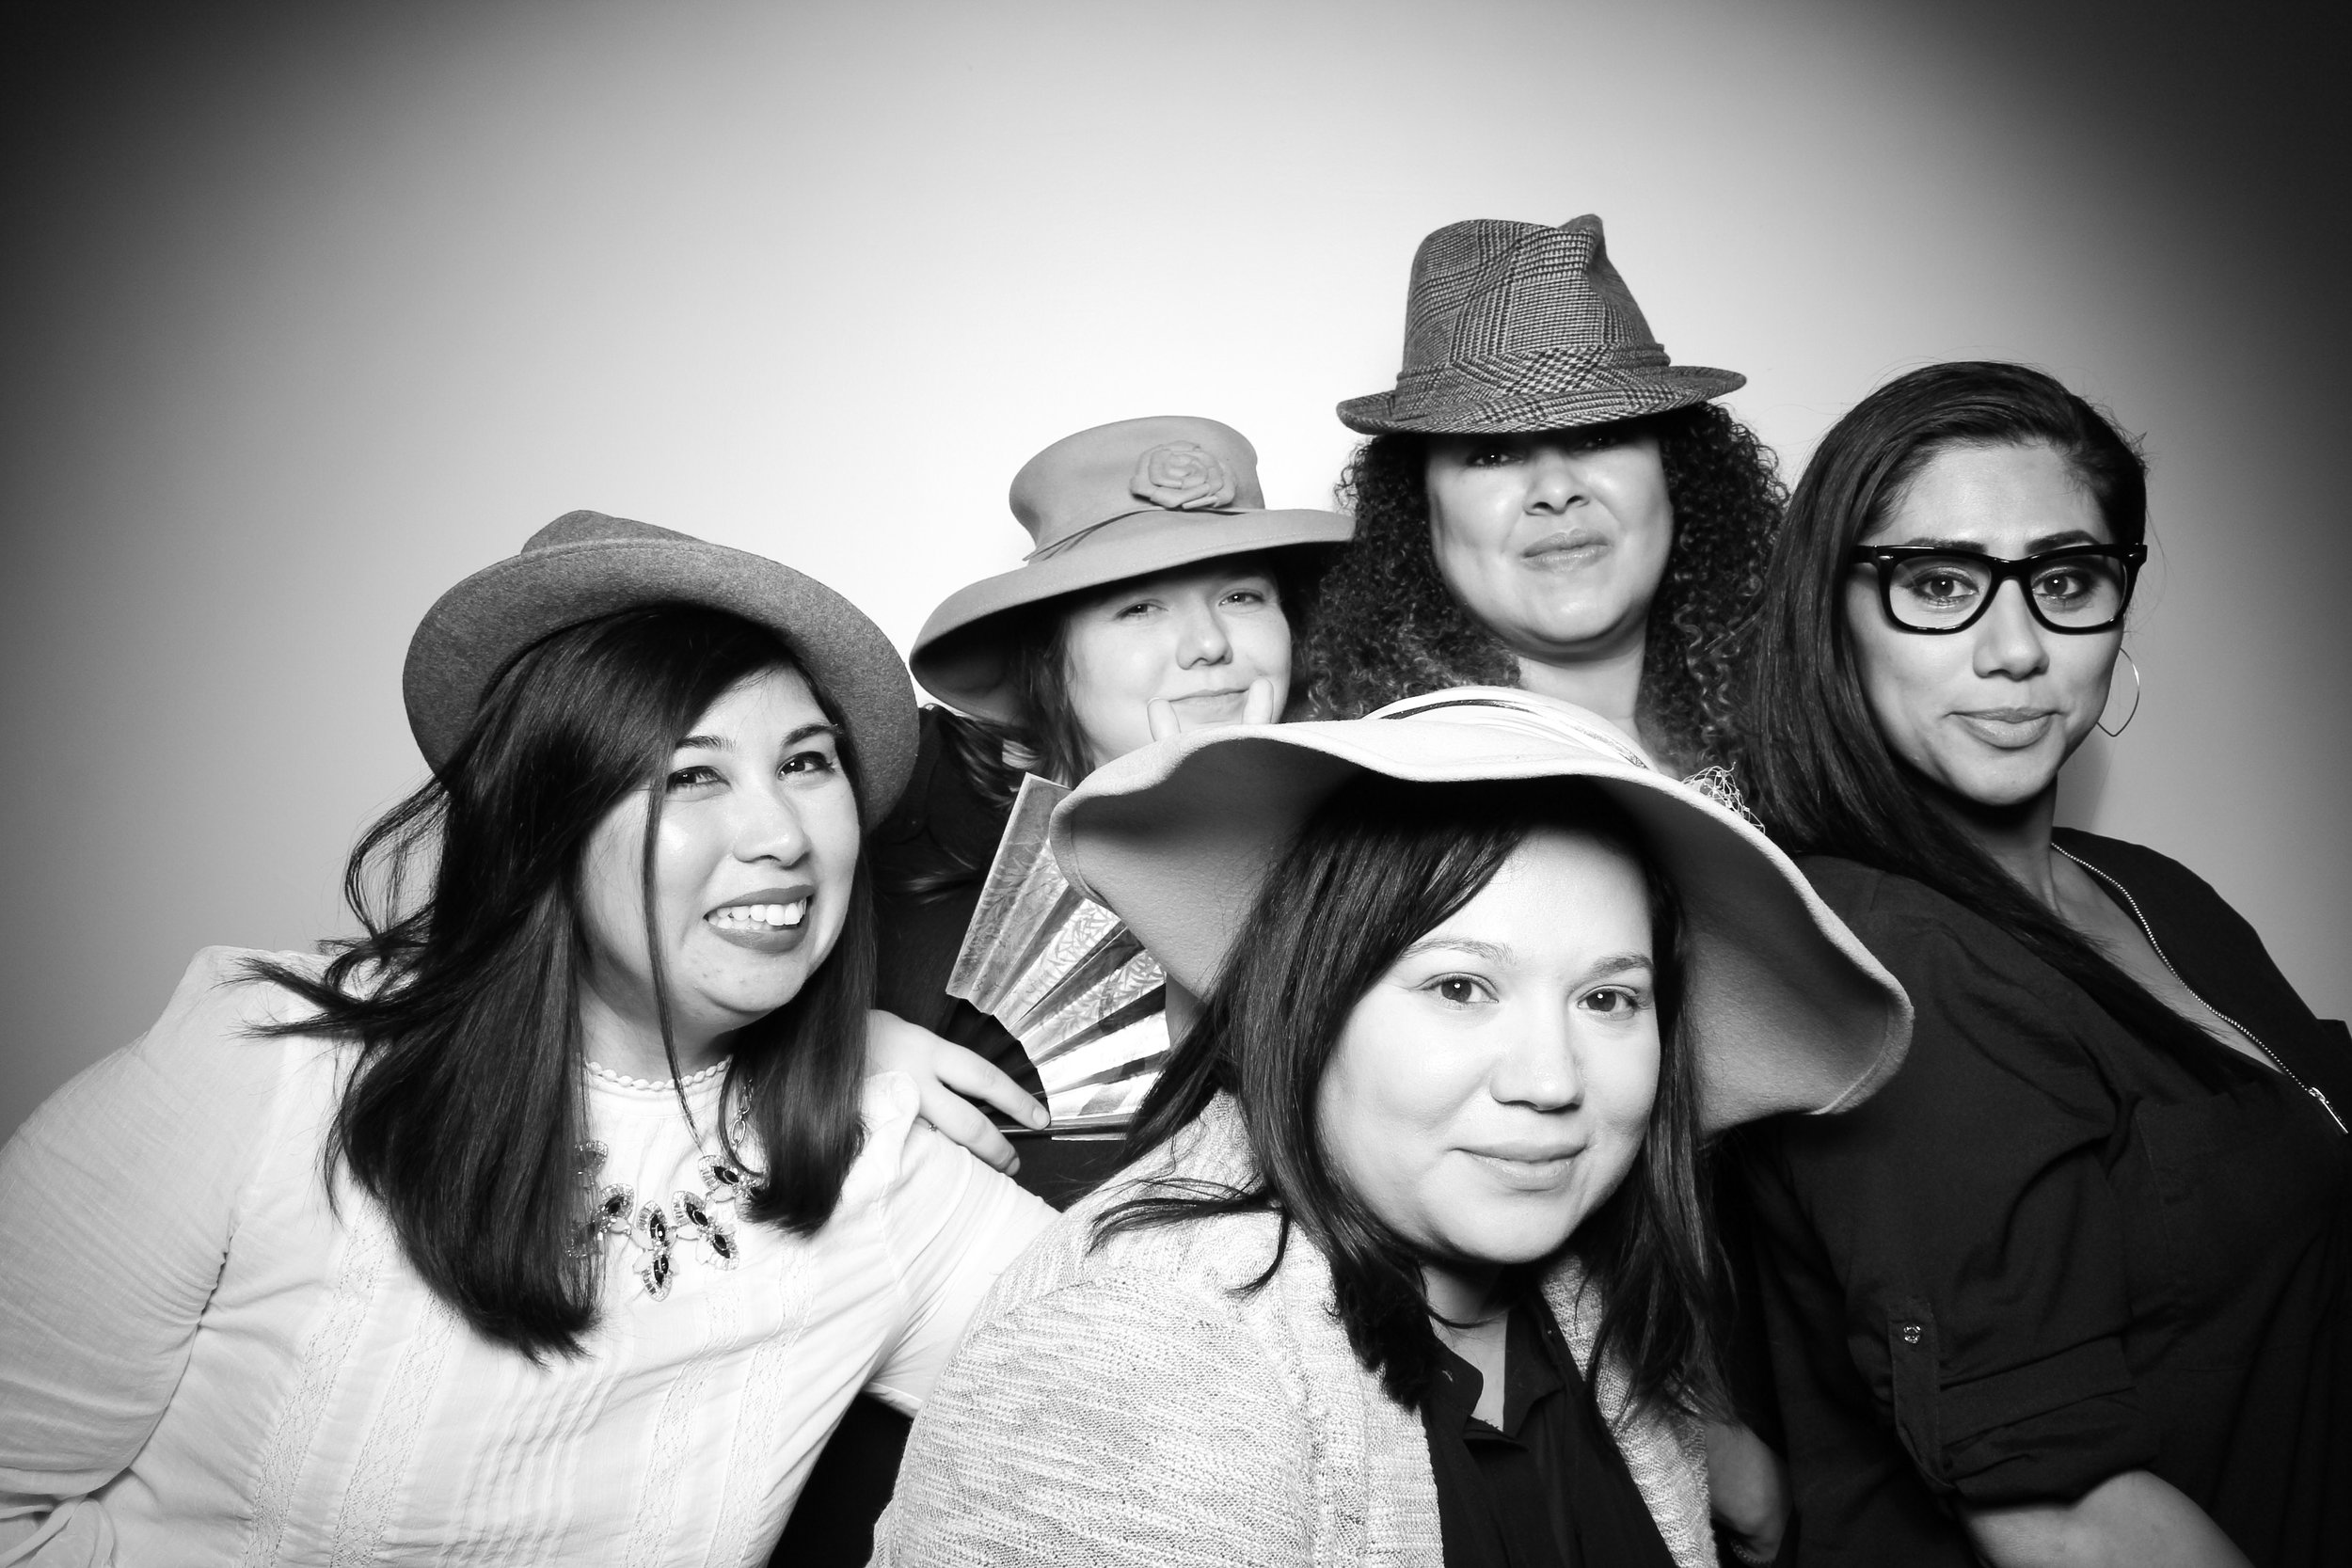 Venue_West_J&L_Catering_Chicago_Photo_Booth_Vitnage__11.jpg